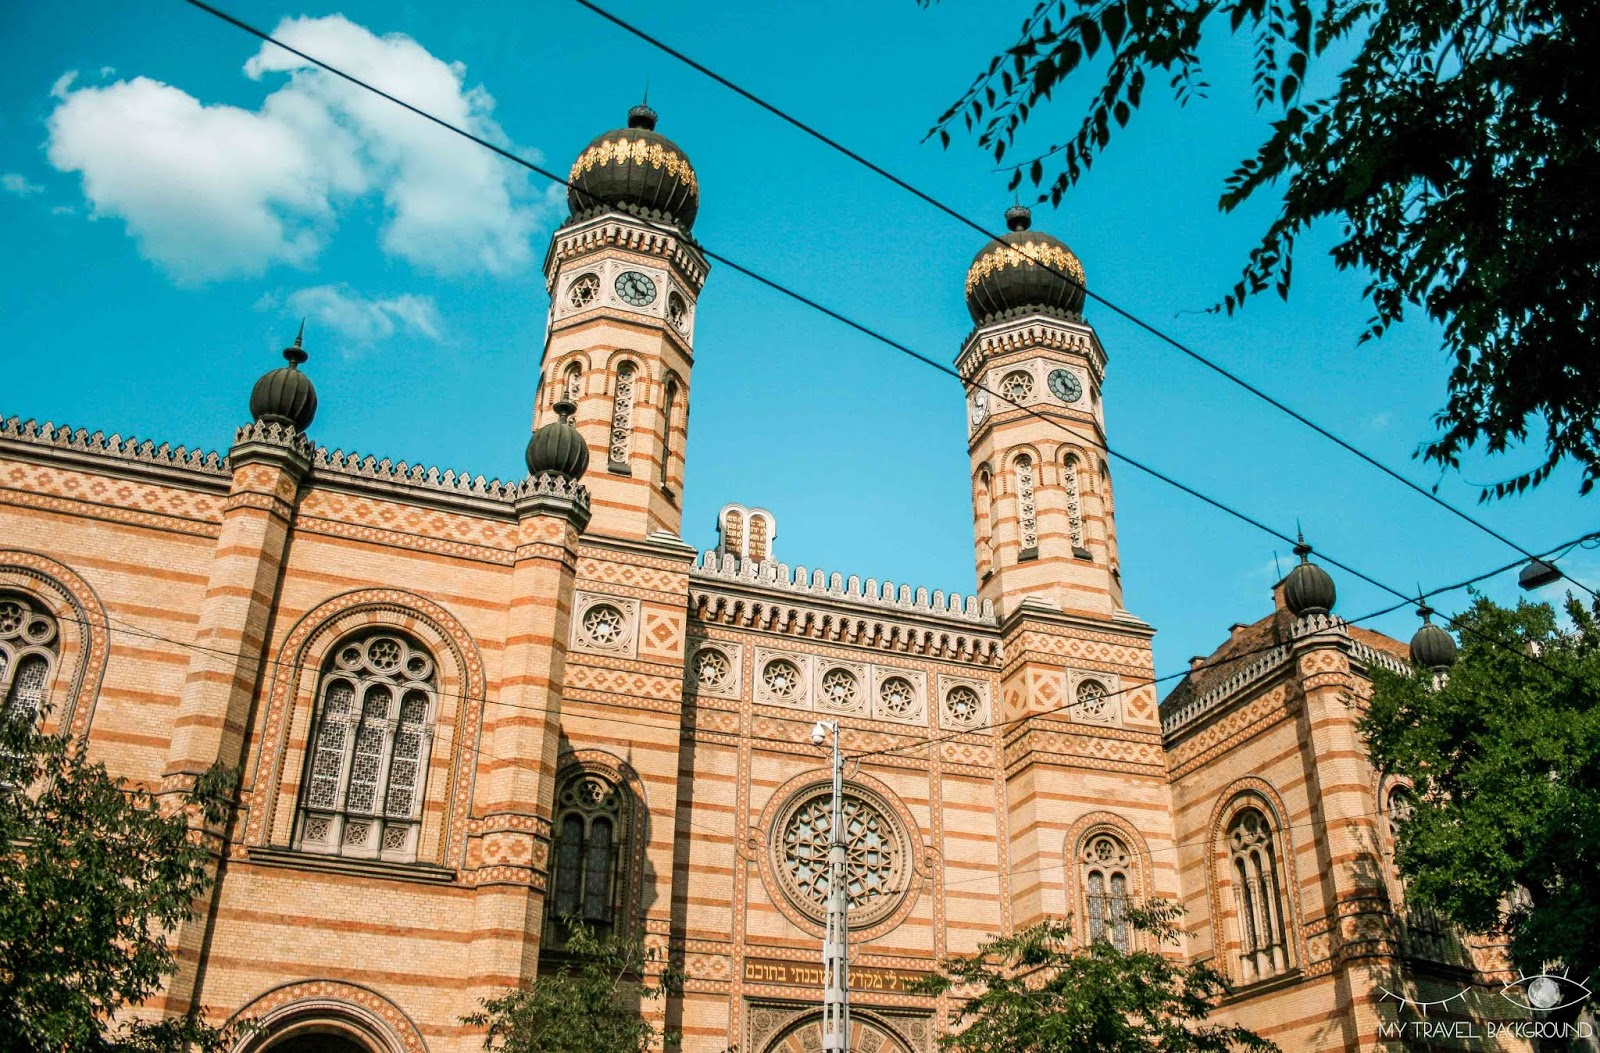 My Travel Background : 1 week-end à Budapest en Hongrie - La Grande Synagogue